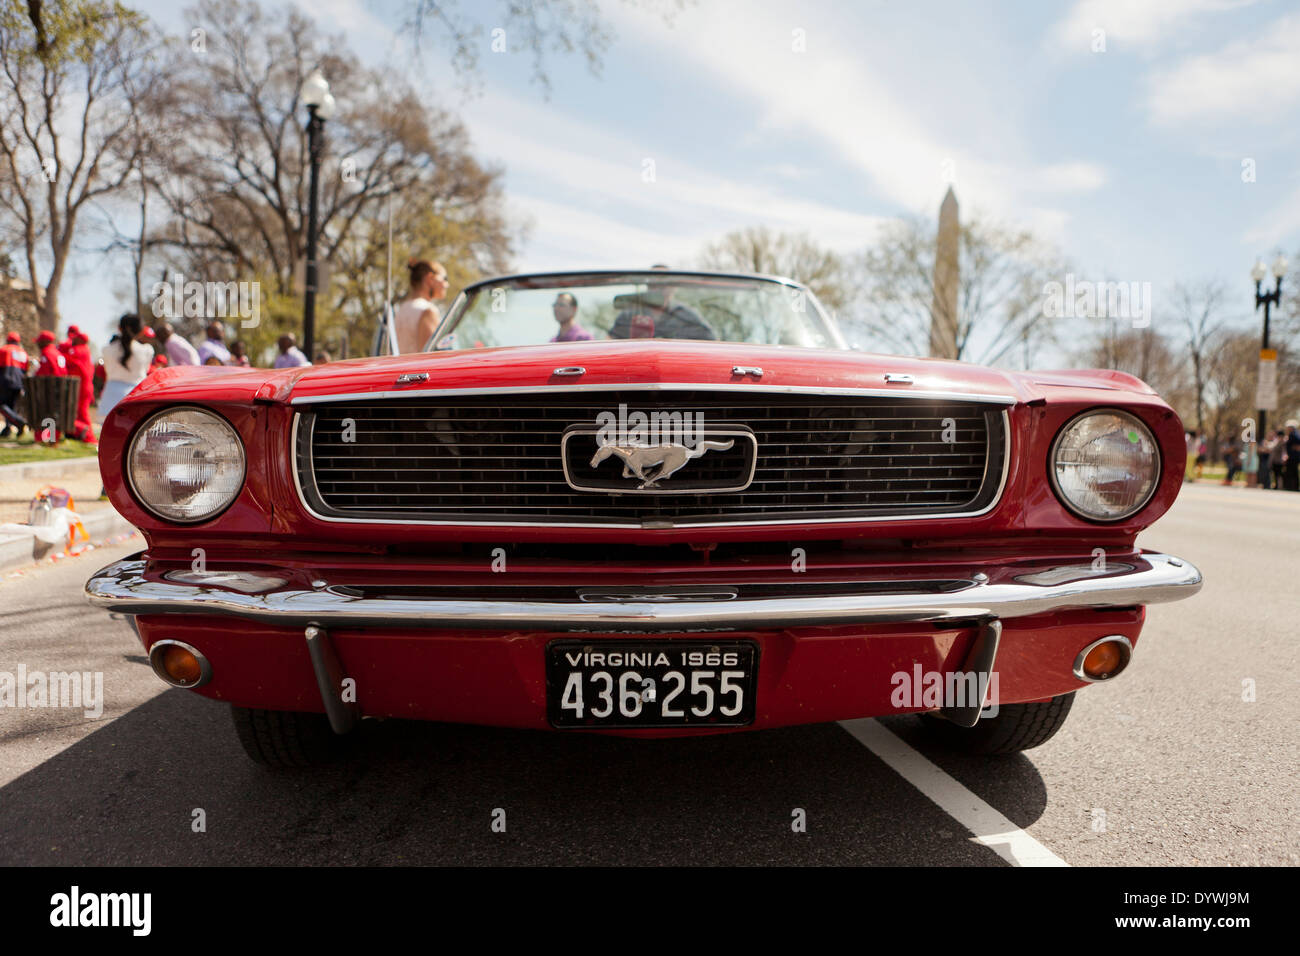 Ideal Ford Mustang Stock Photos & Ford Mustang Stock Images - Alamy YU22